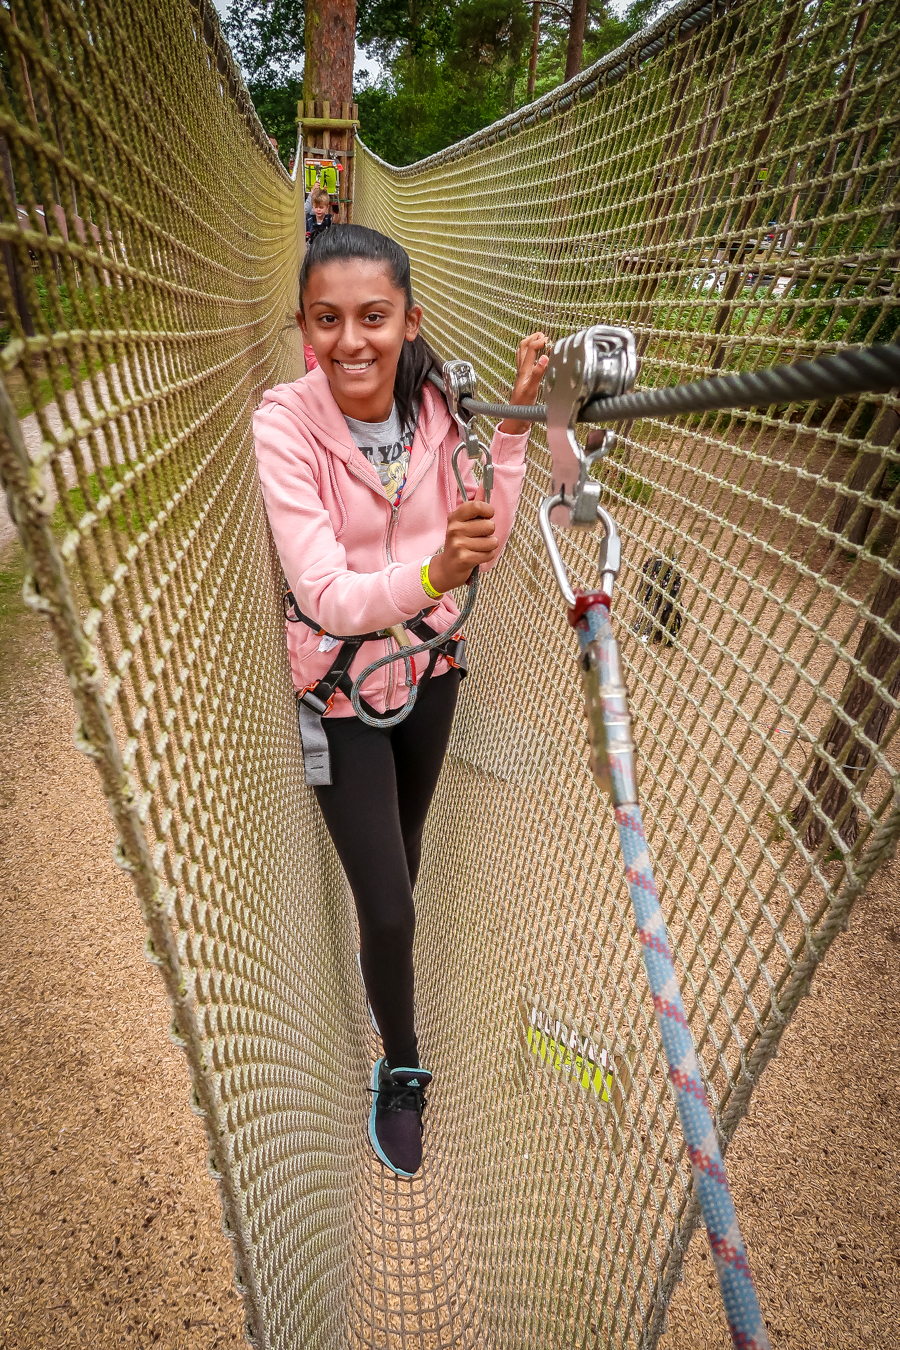 Go Ape - Shalini crossing the nets